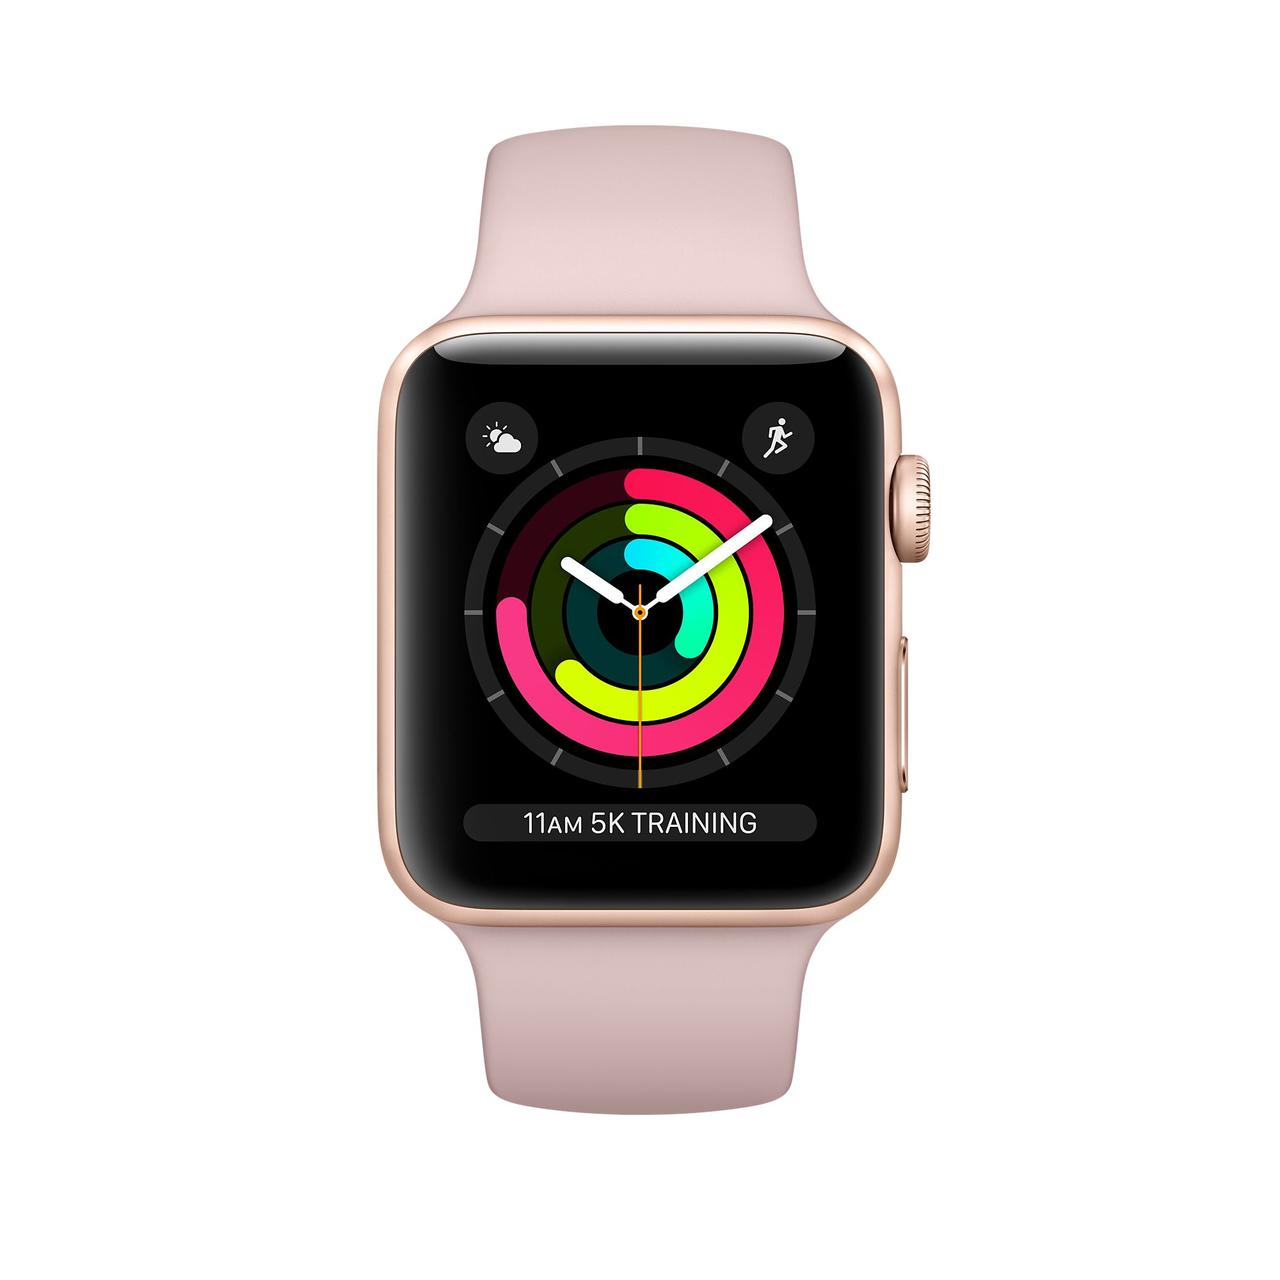 Apple  Watch 42 series 3 Gold Aluminum Case with Pink Sand Sport Band - Магазин Техники Apple  в Алматы